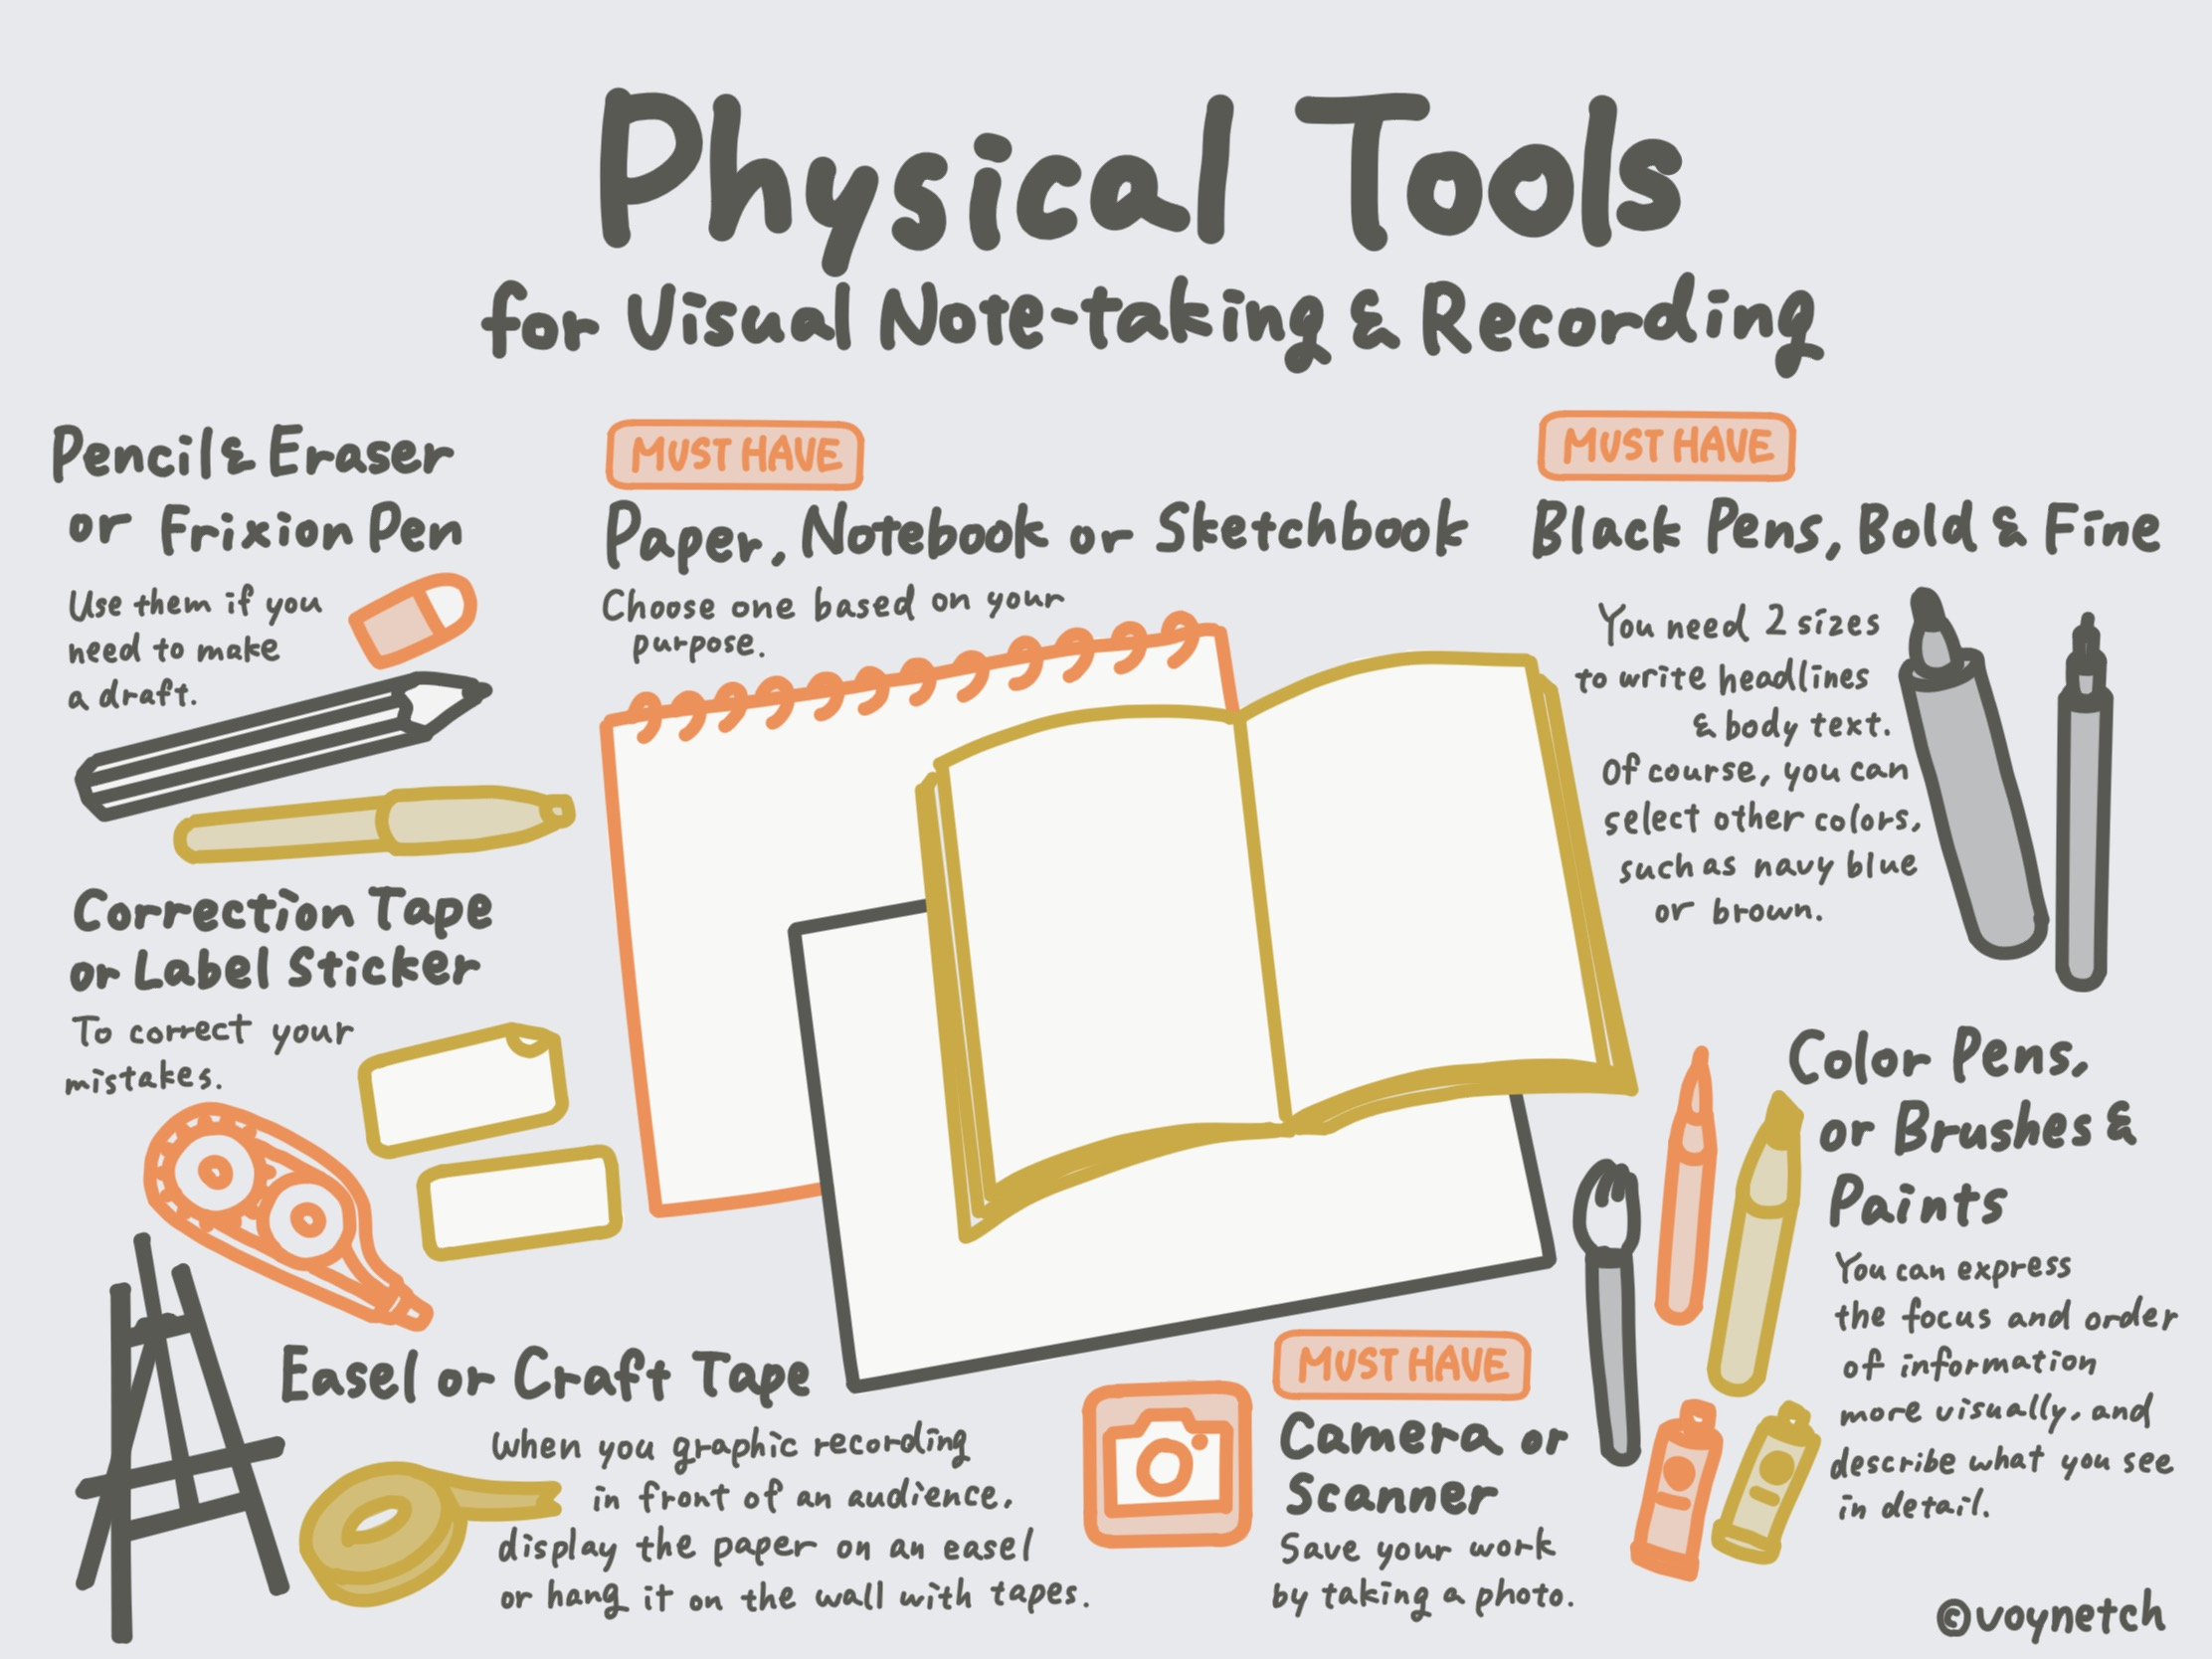 Physical Tools for Visual Note-taking and Recording Image